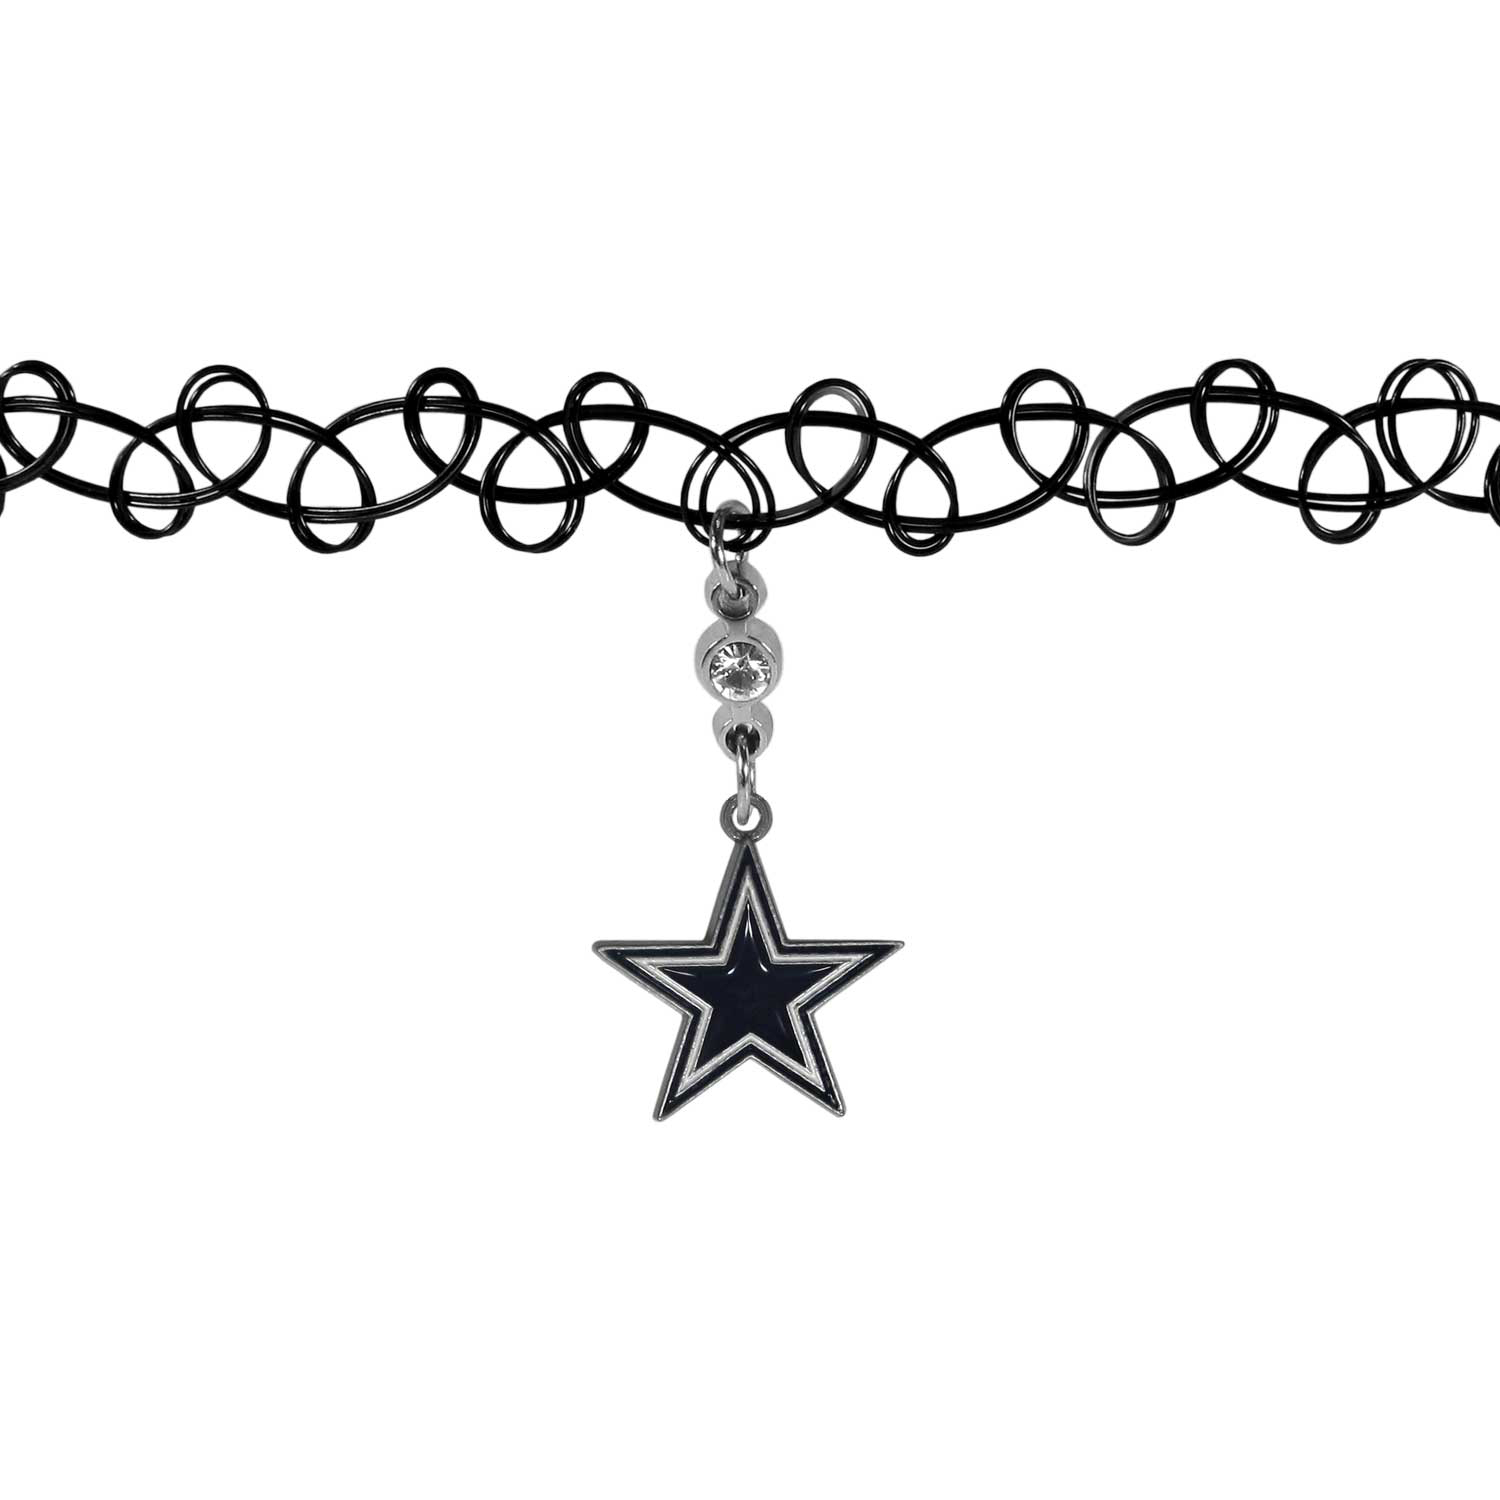 Dallas Cowboys Knotted Choker - This retro, knotted choker is a cool and unique piece of fan jewelry. The tattoo style choker features a high polish Dallas Cowboys charm with rhinestone accents.